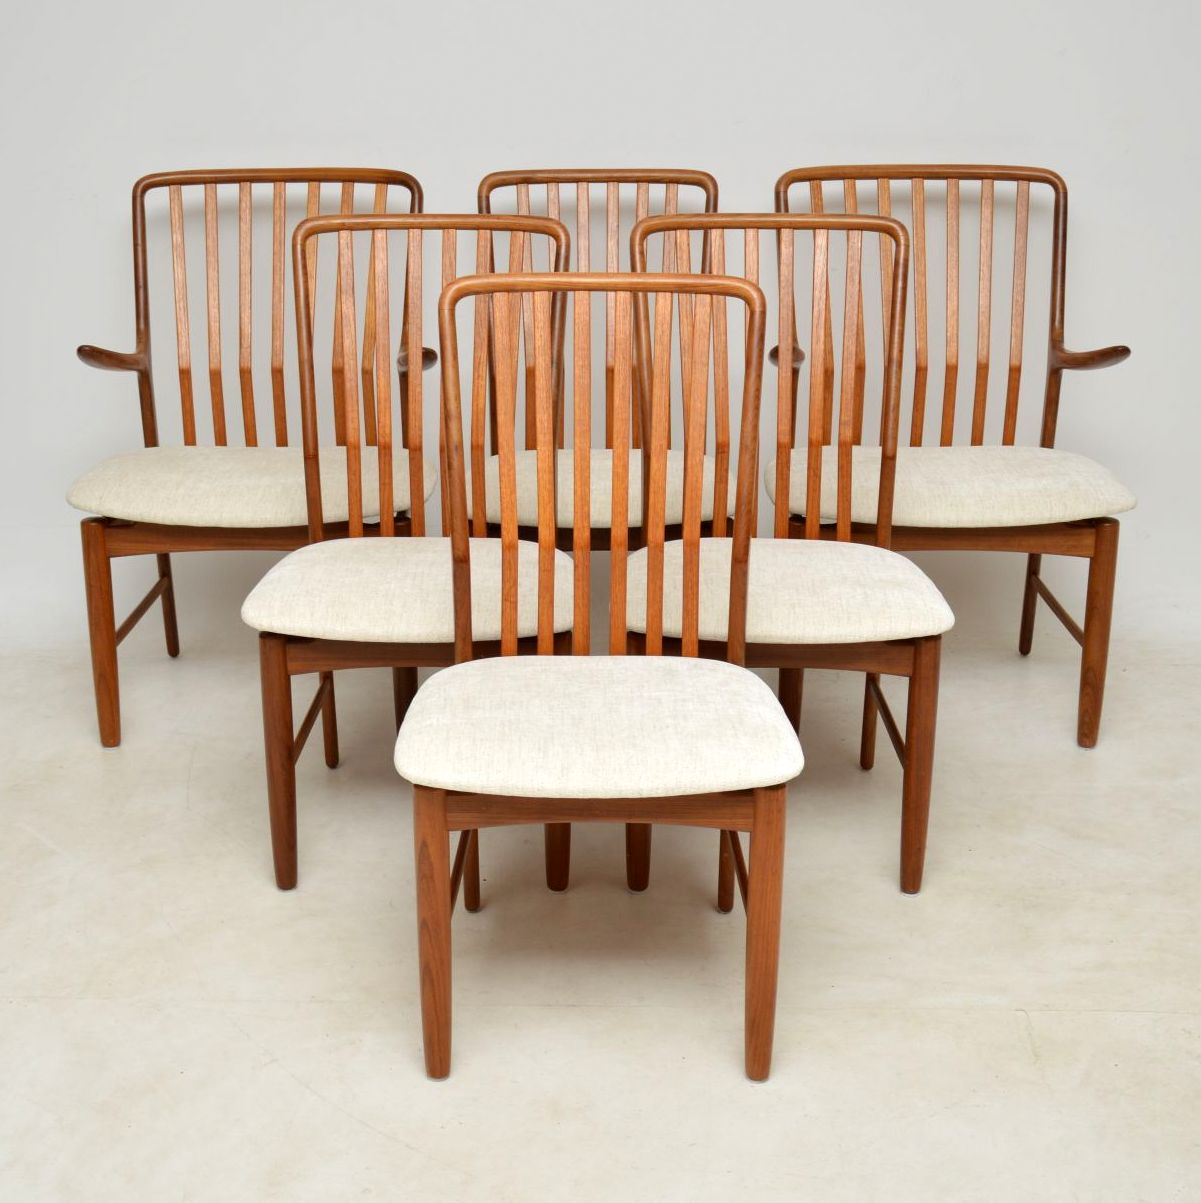 1960 S Vintage Set Of 6 Danish Teak Dining Chairs By Svend Aage Madsen Retrospective Interiors Retro Furniture Vintage Mid Century Furniture Vintage Danish Modern Furniture Antique Furniture London